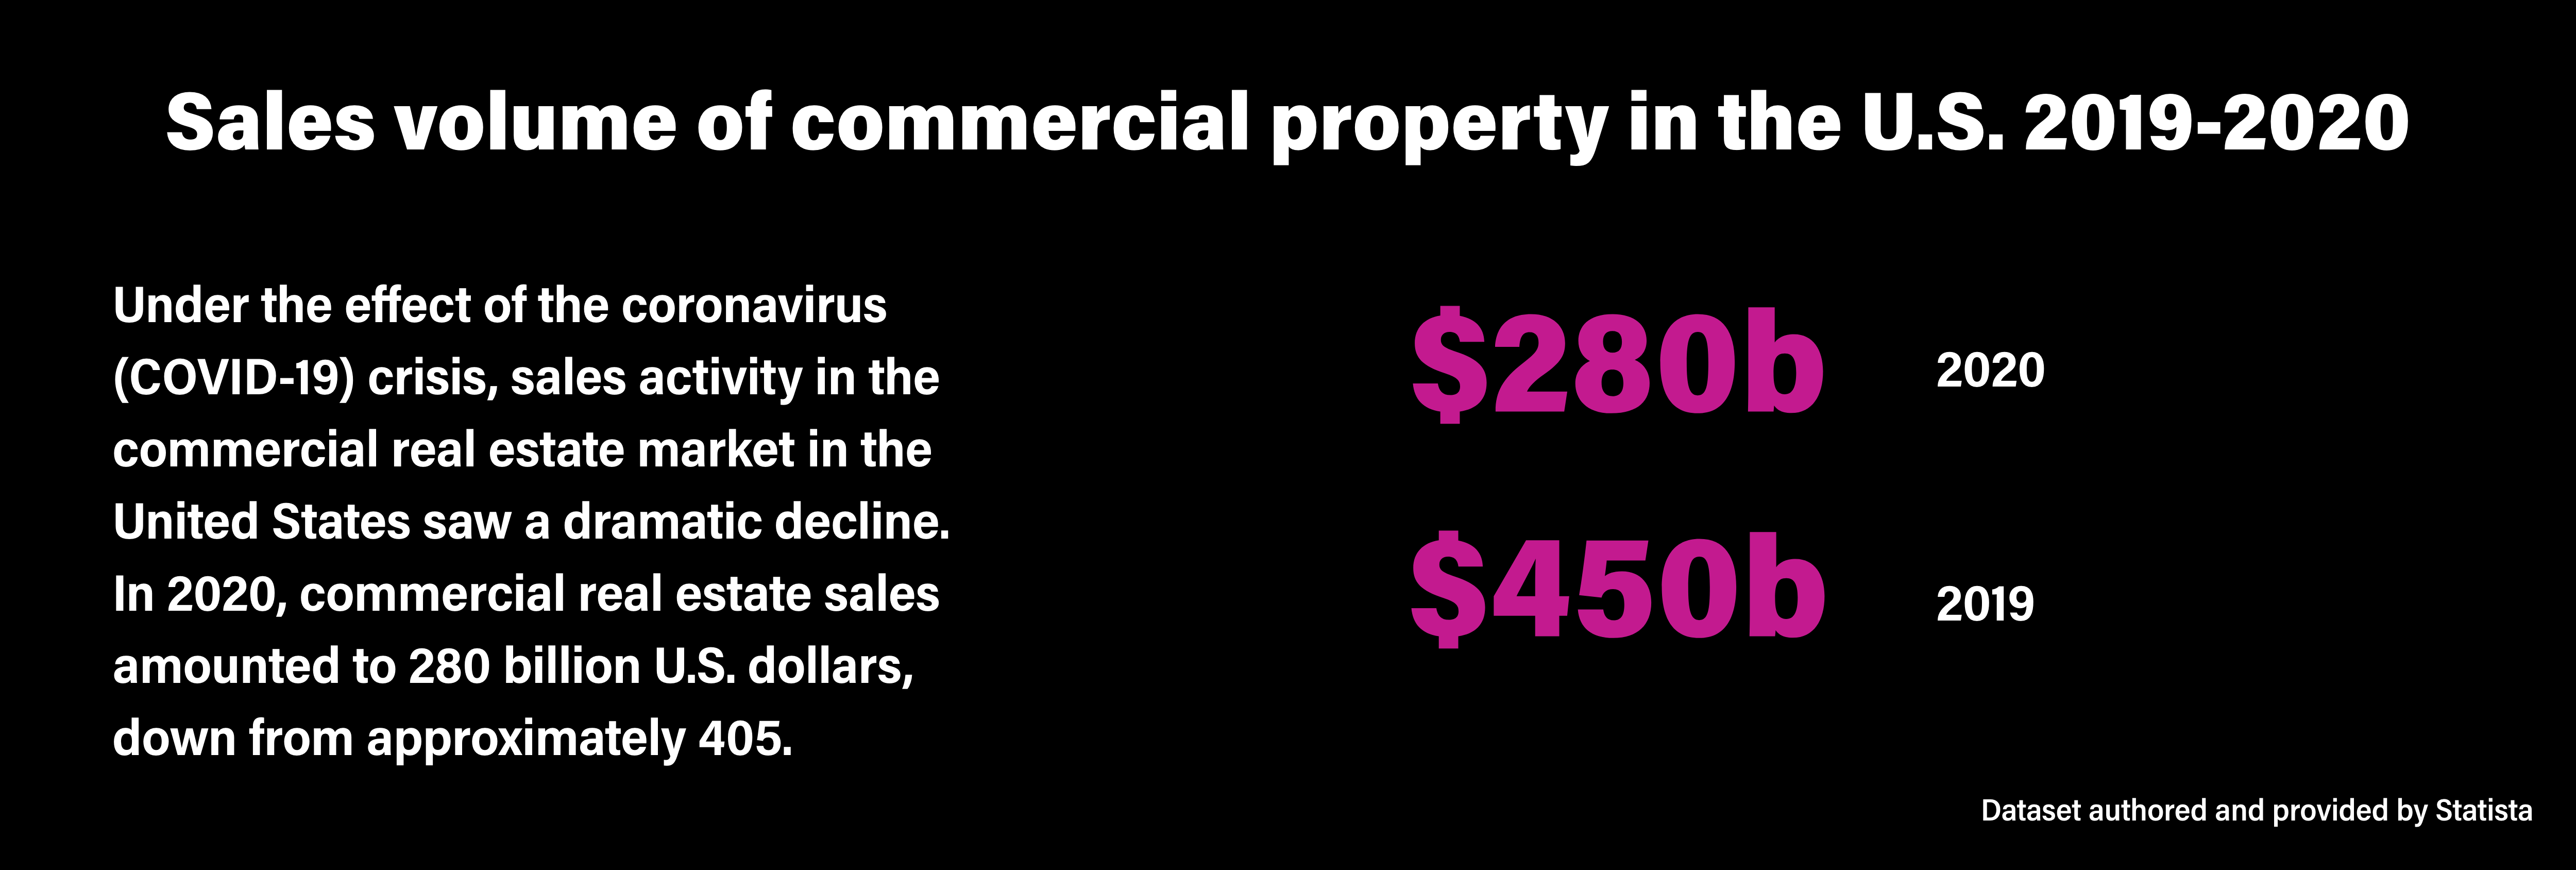 Sales volume of commercial property in the U.S. 2019-2020